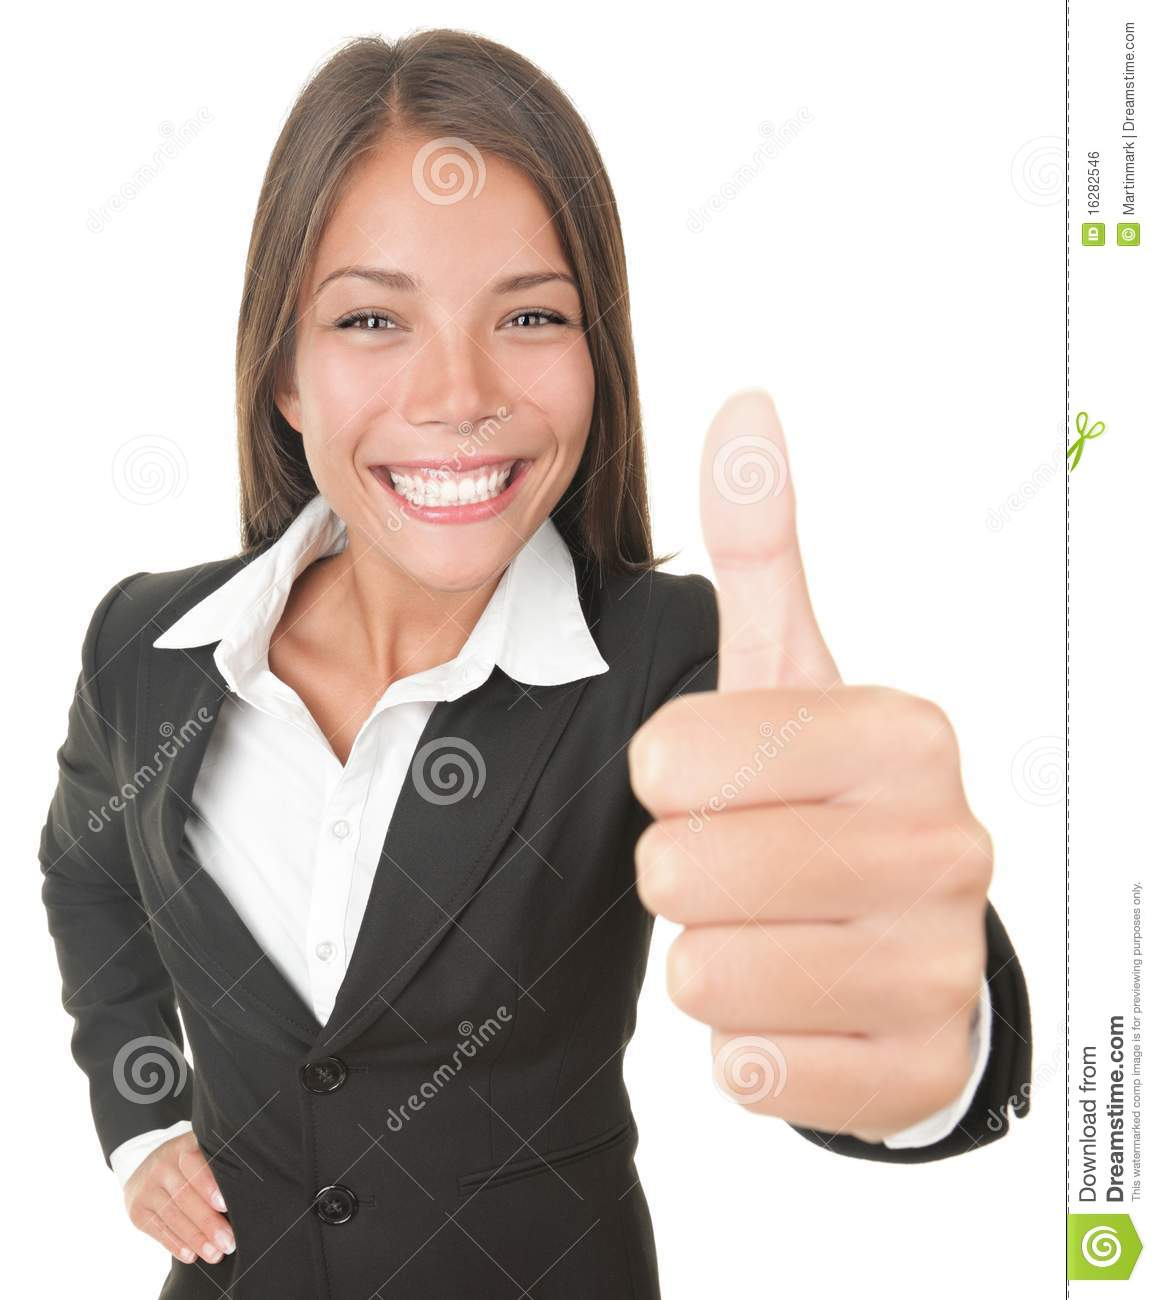 Success Business Woman Royalty Free Stock Image - Image ...